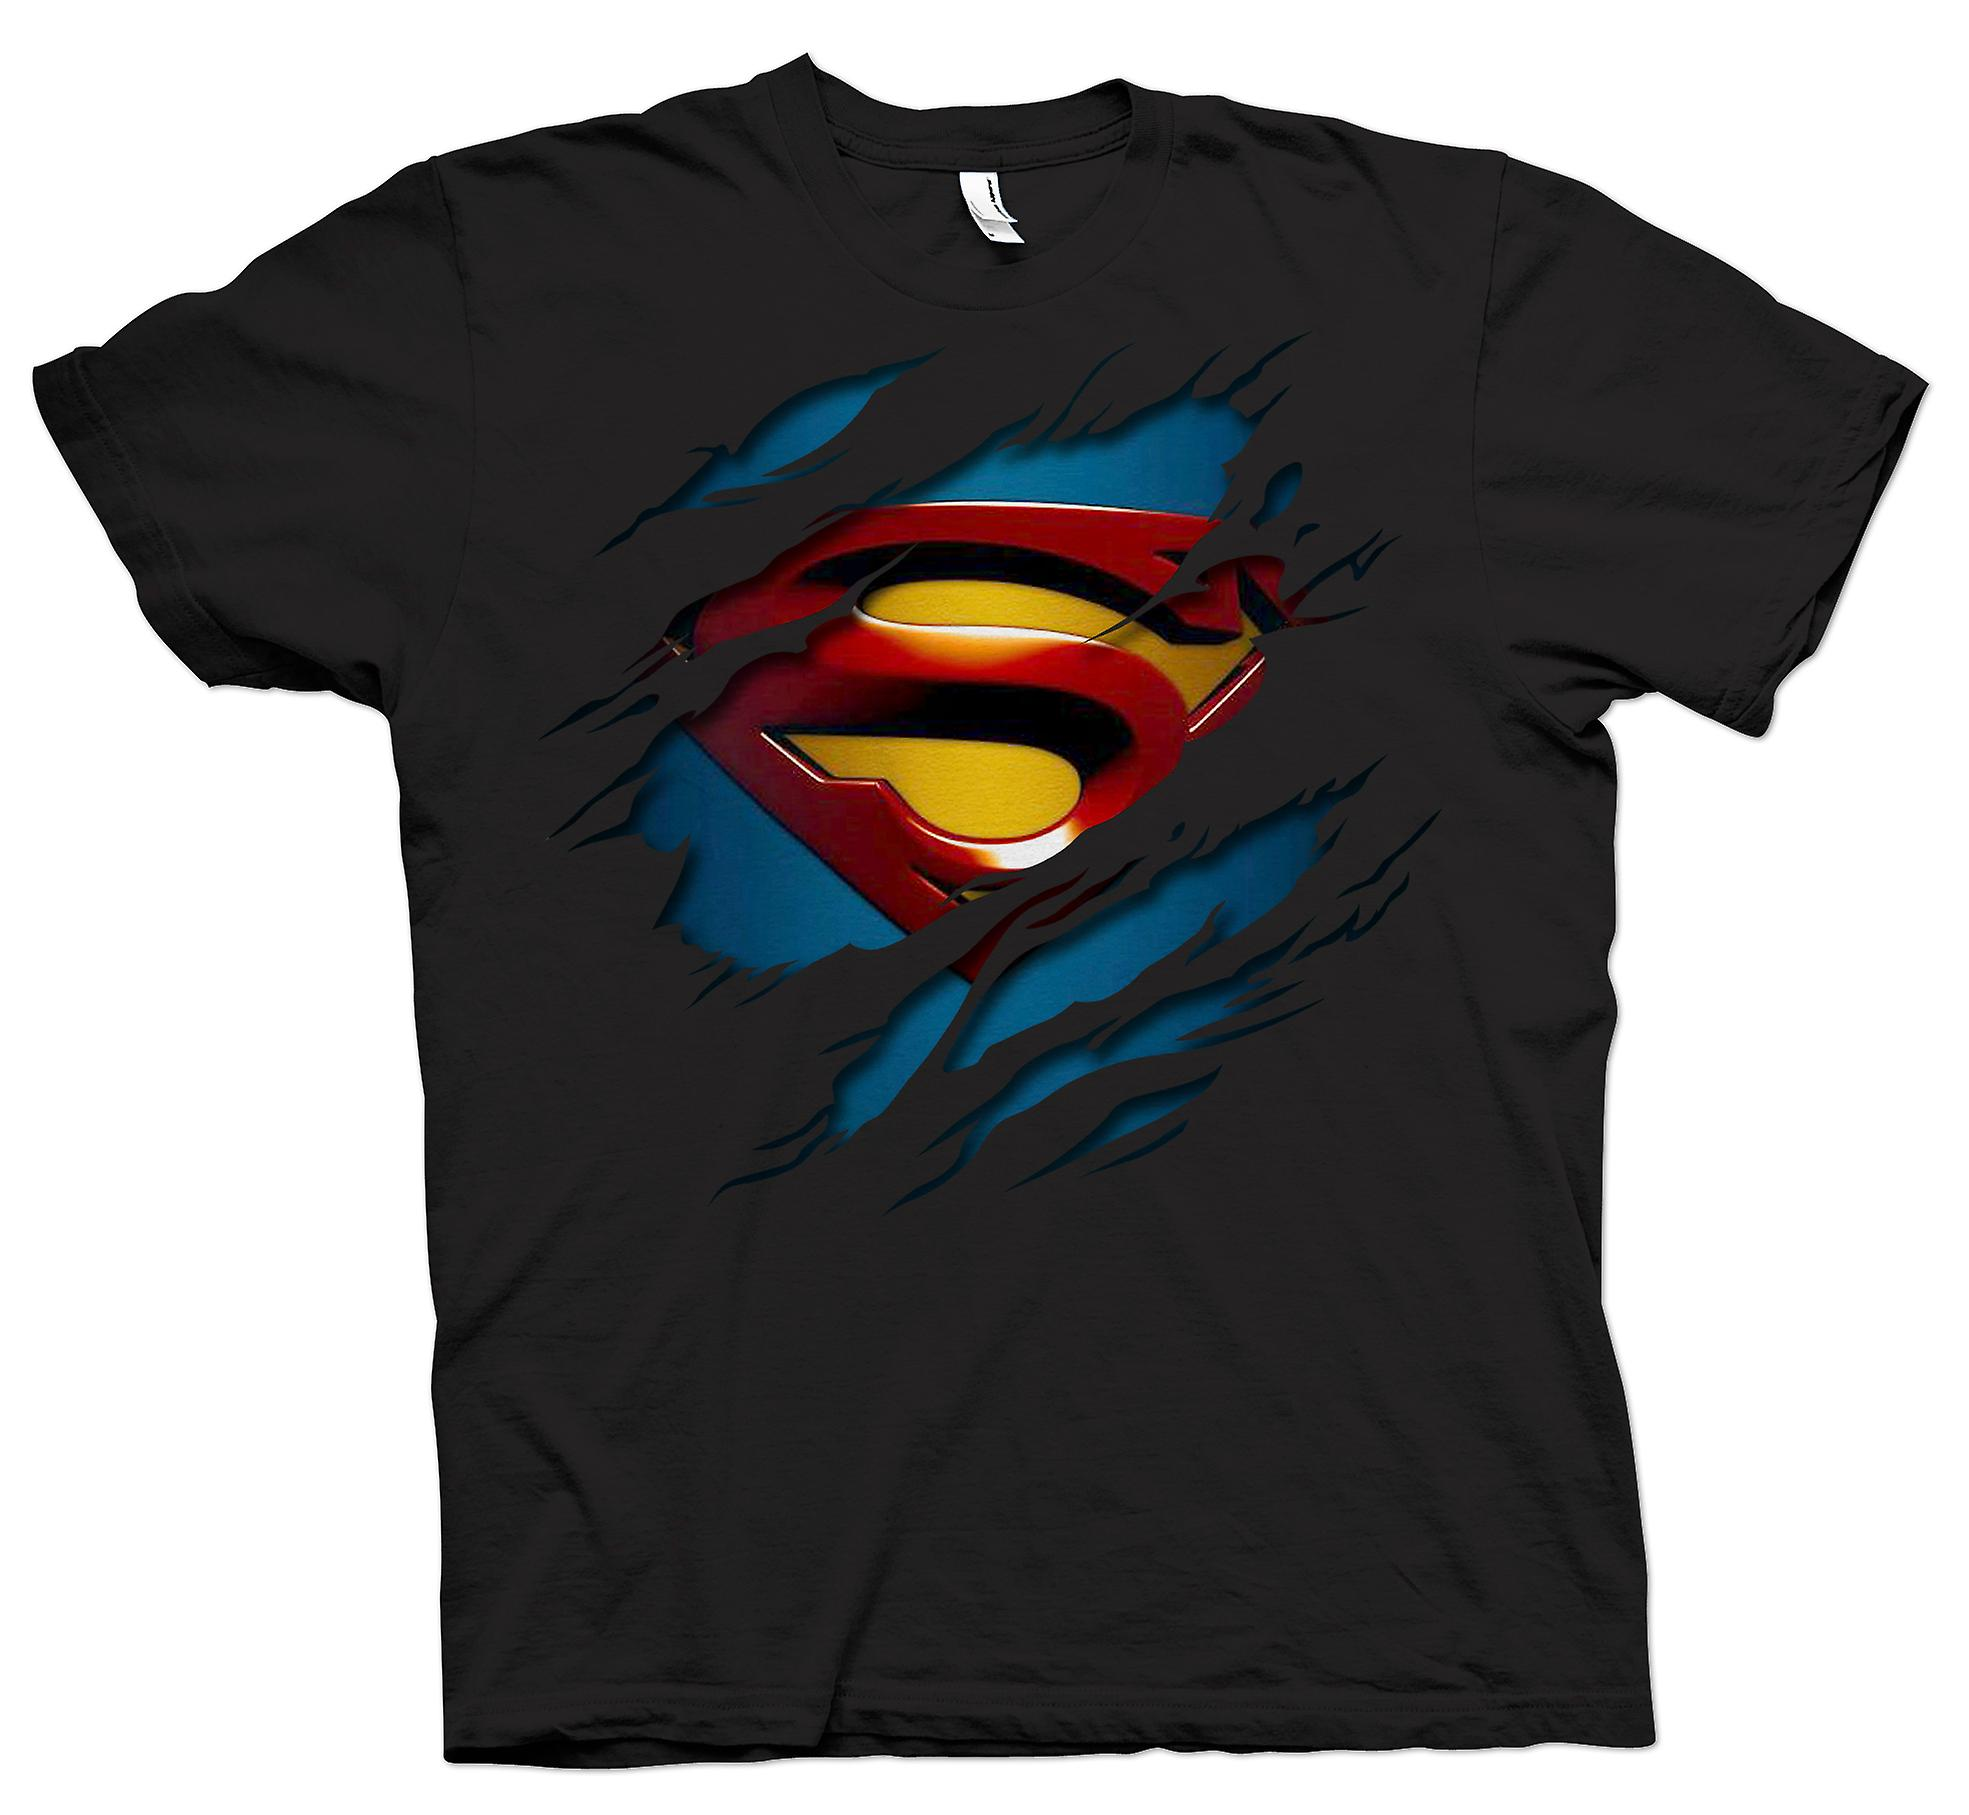 Kids T-shirt - Superman Under Shirt Effect - Action - Superhero